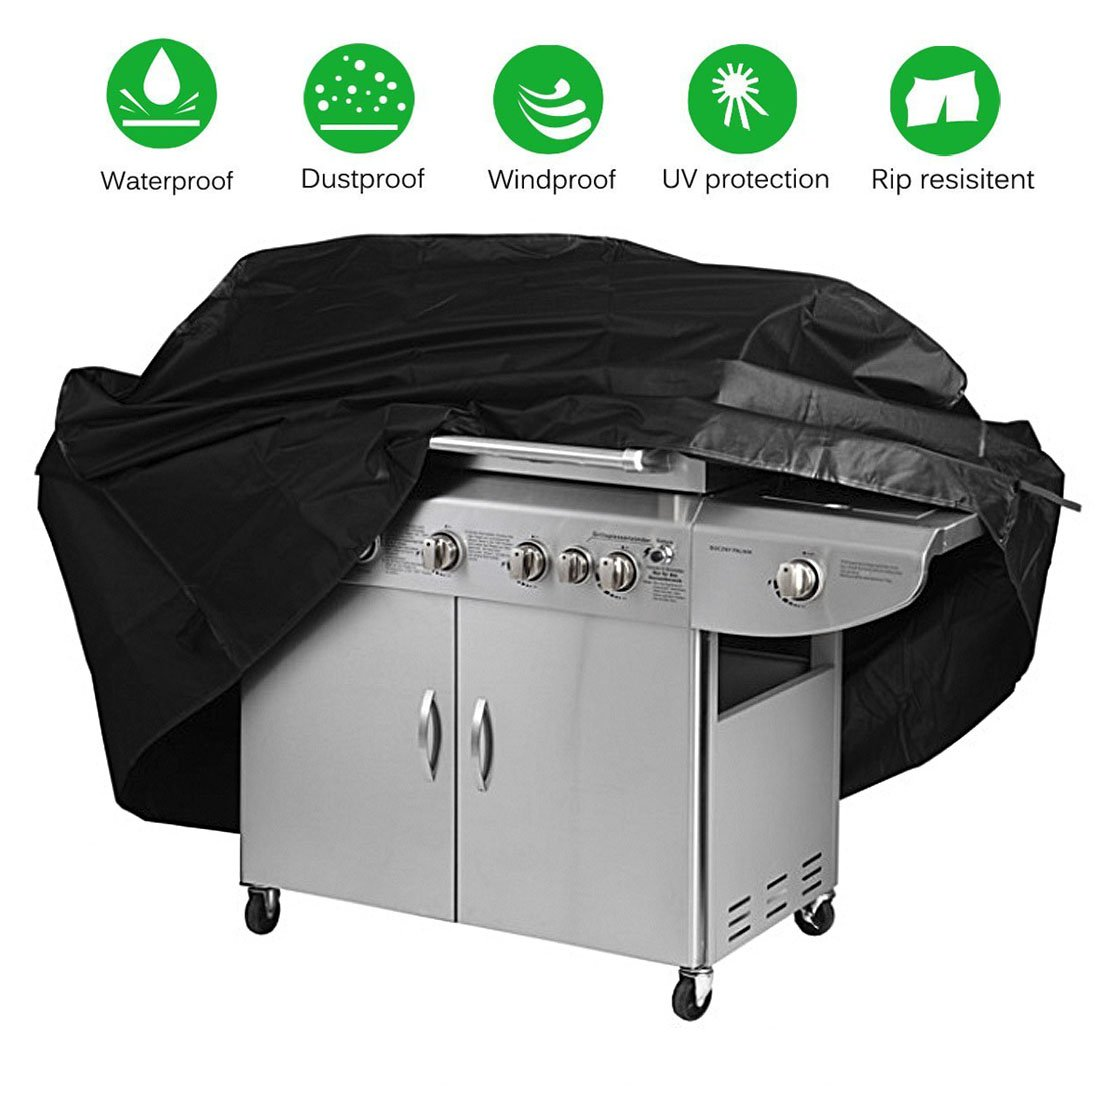 Grill Cover Medium 60 Inch BBQ Cover Heavy Duty Waterproof Weather Outdoor Patio Barbeque Gas Grill Covers for Home Garden Durable and Convenient Black